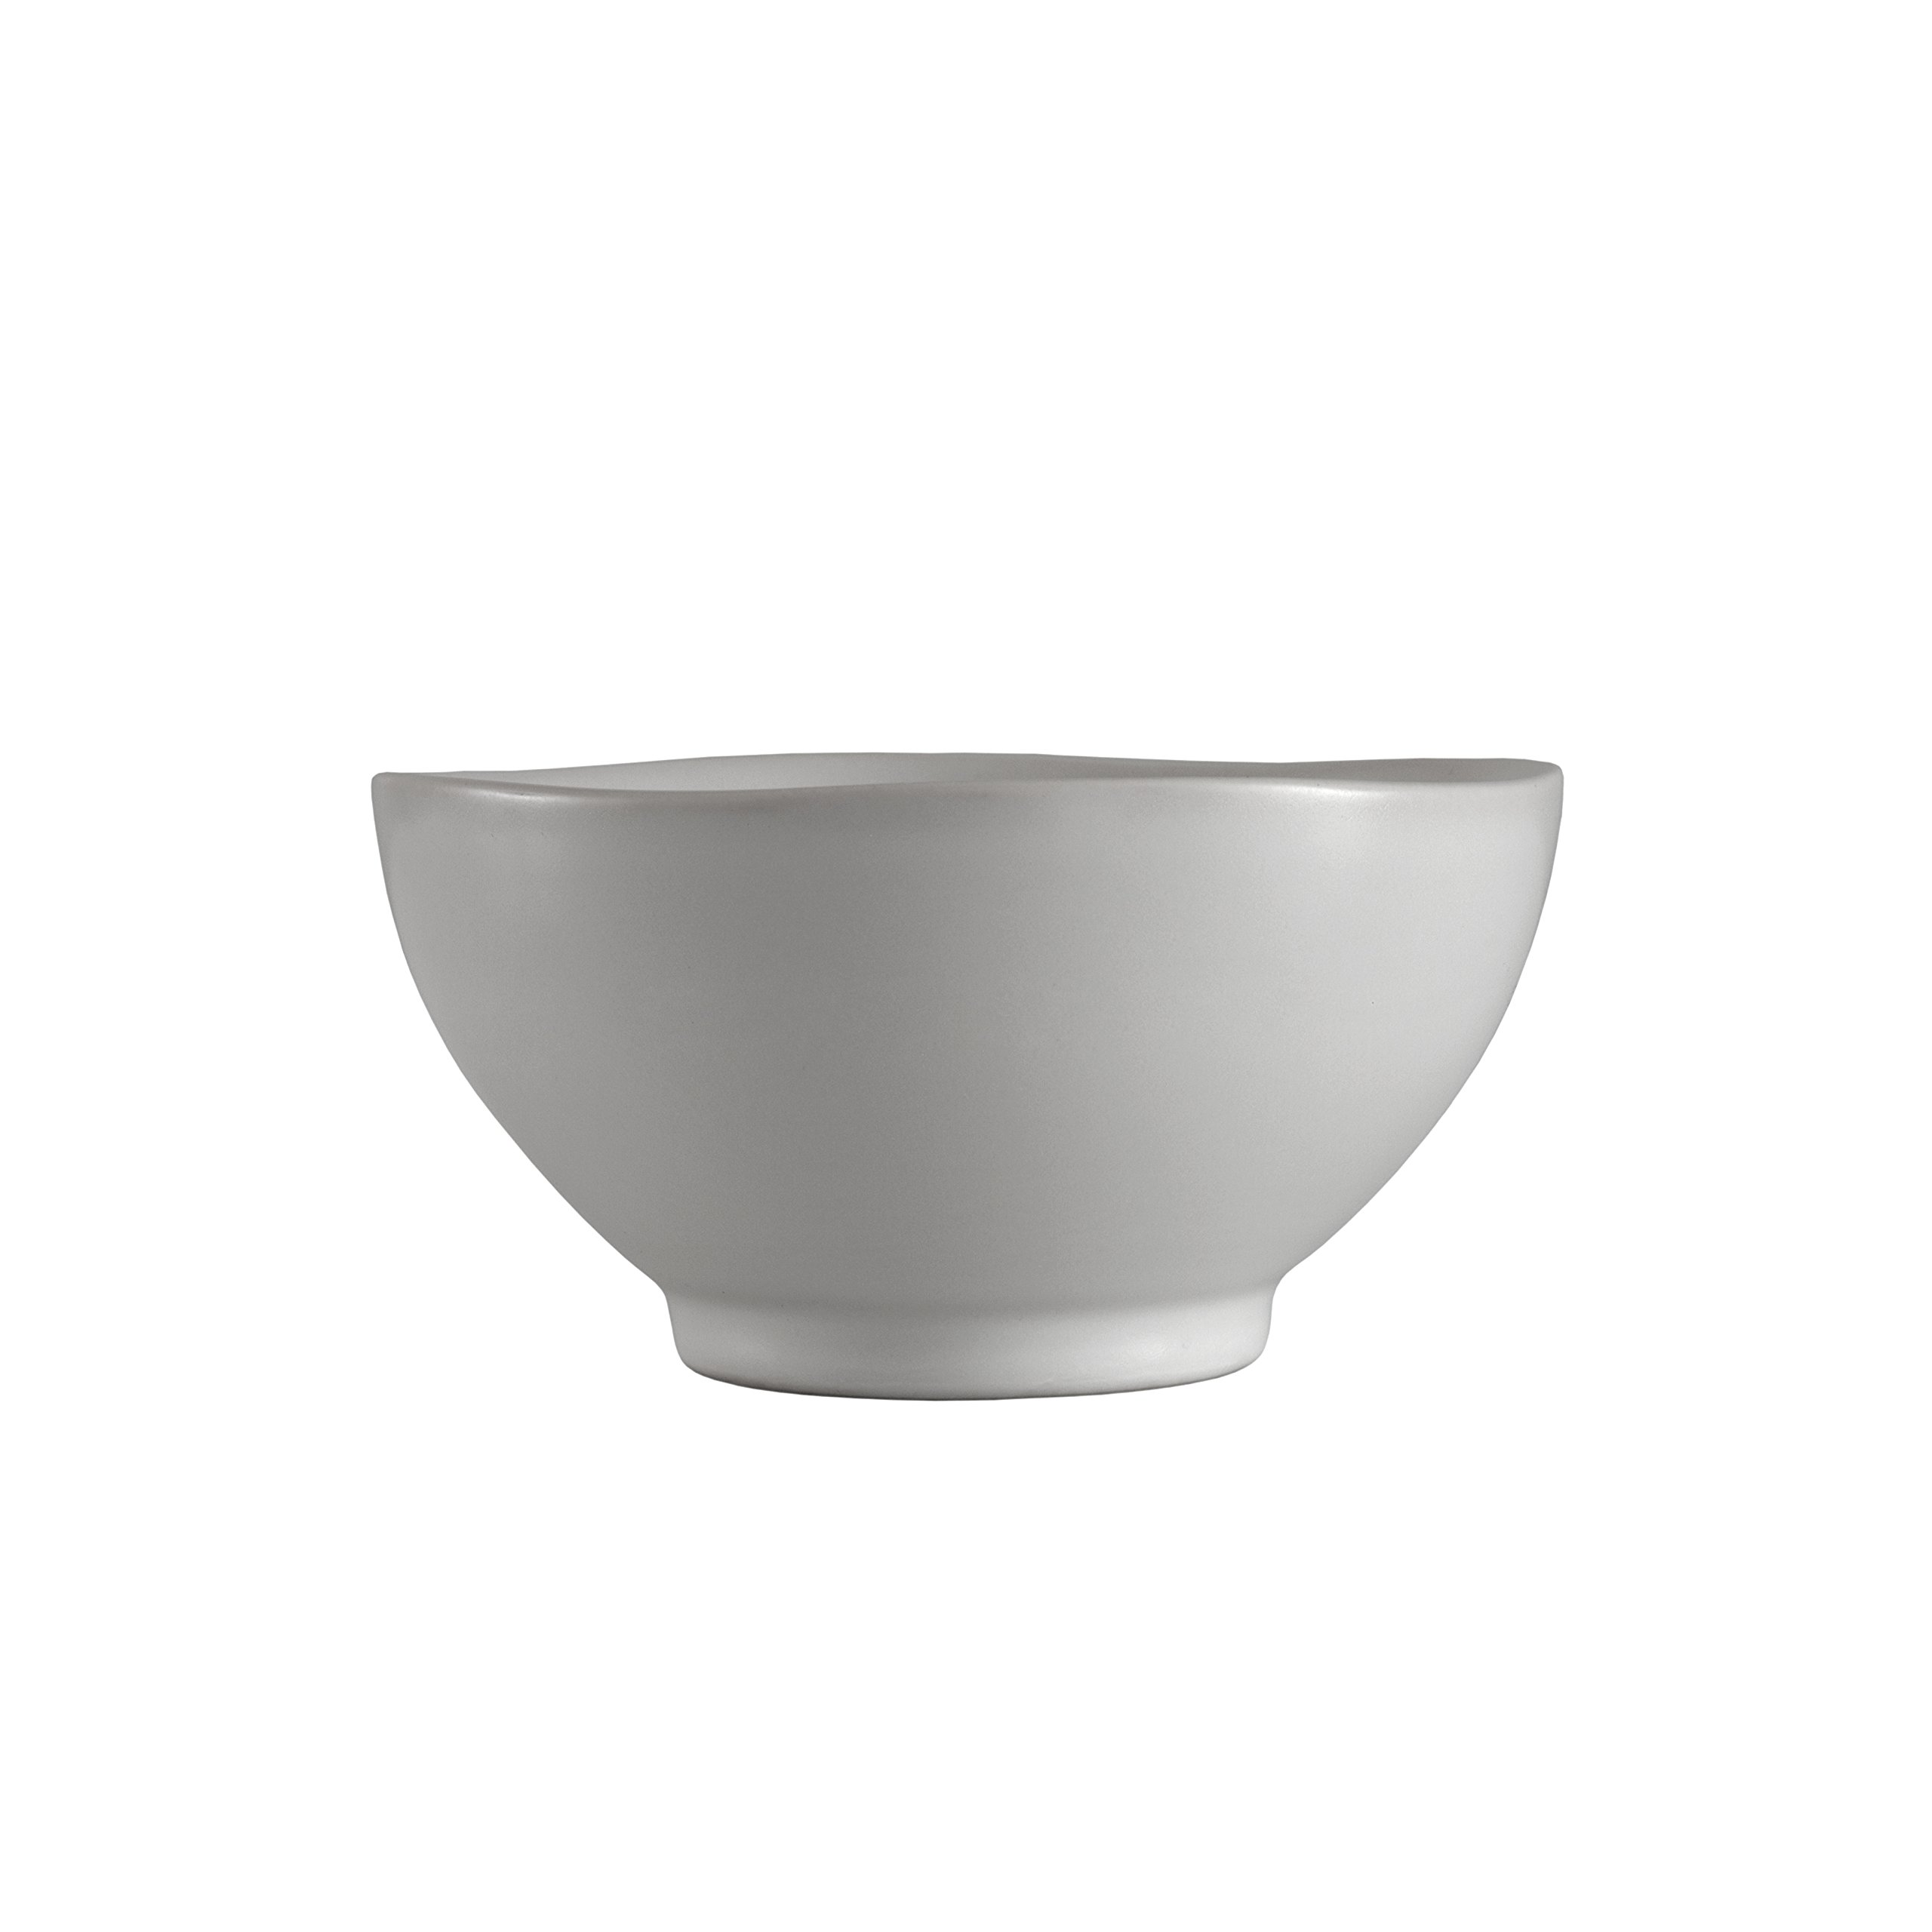 Fortessa Tableware Solutions STN.8000.5.54 Heirloom Inch Rice Bowl Matt Finish Vitraluxe Dinnerware, 5.5', Smoke